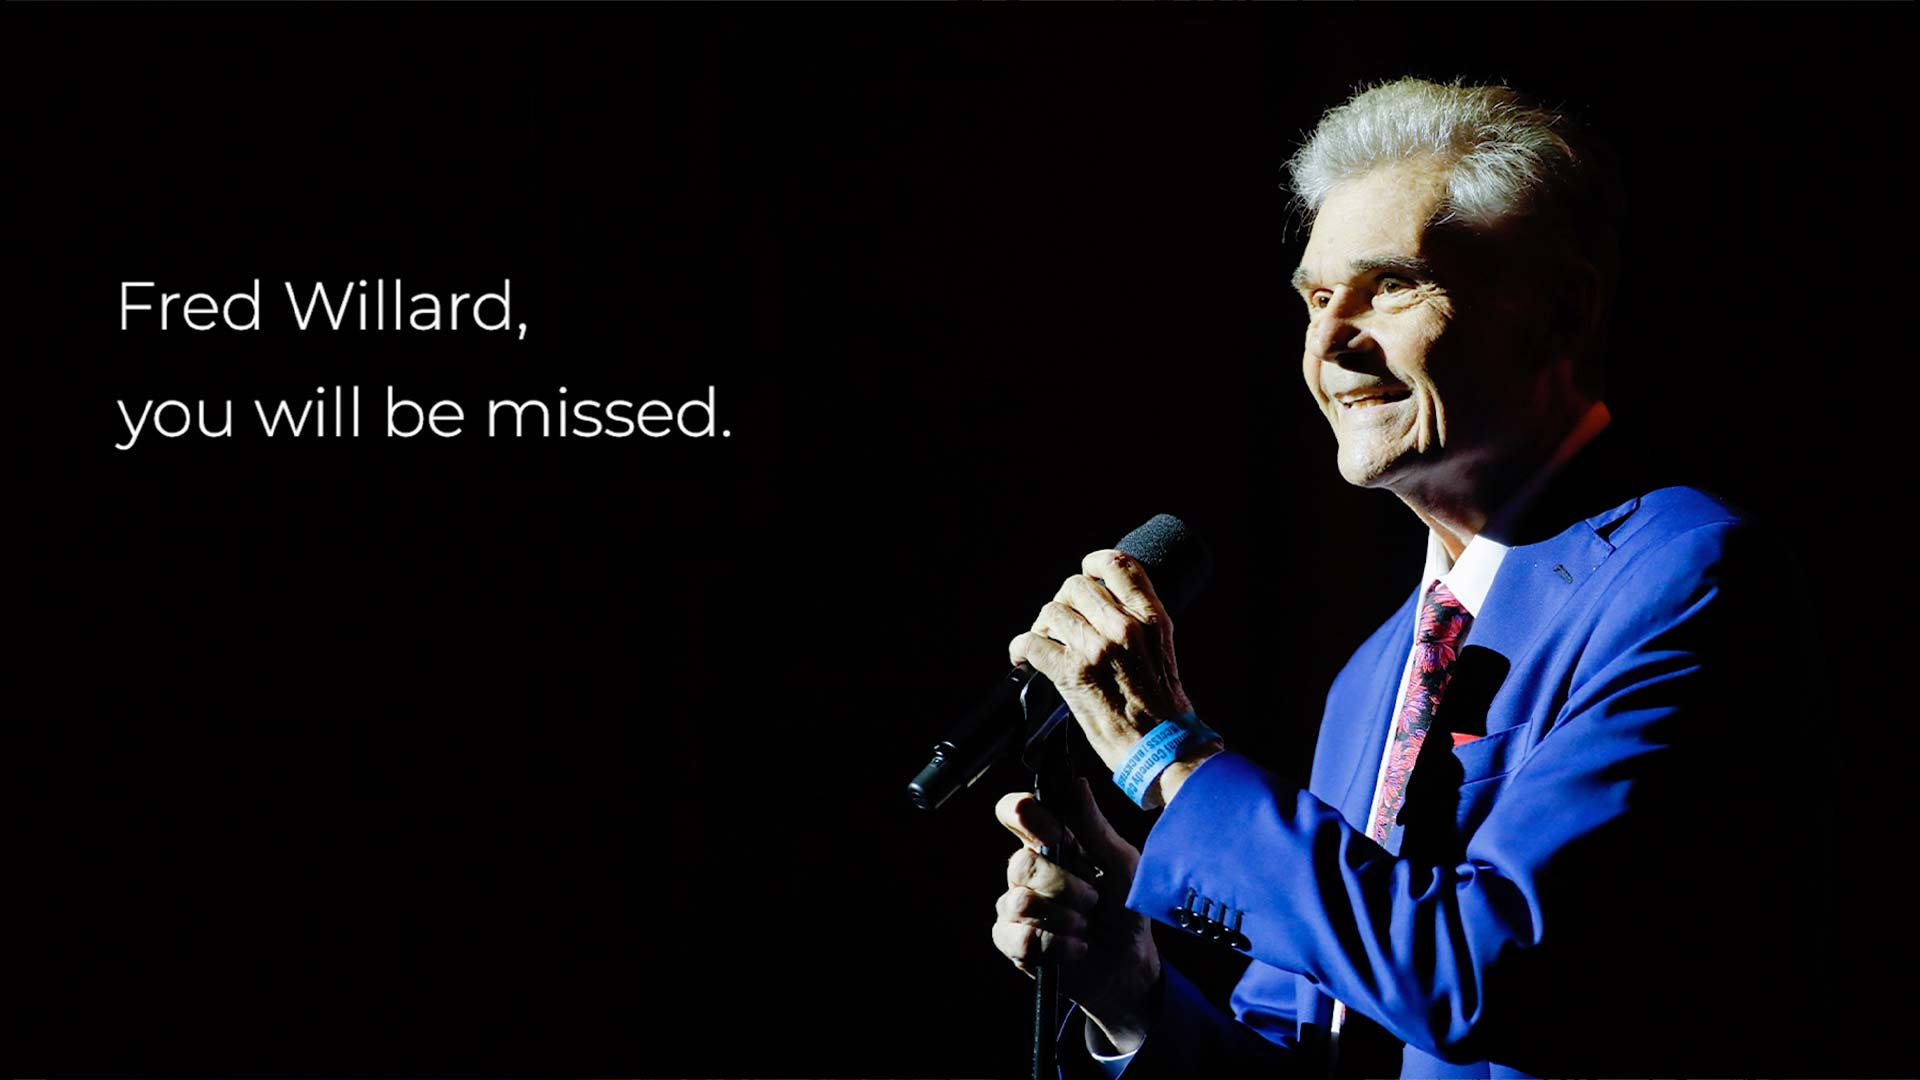 Comedian Fred Willard holds a microphone